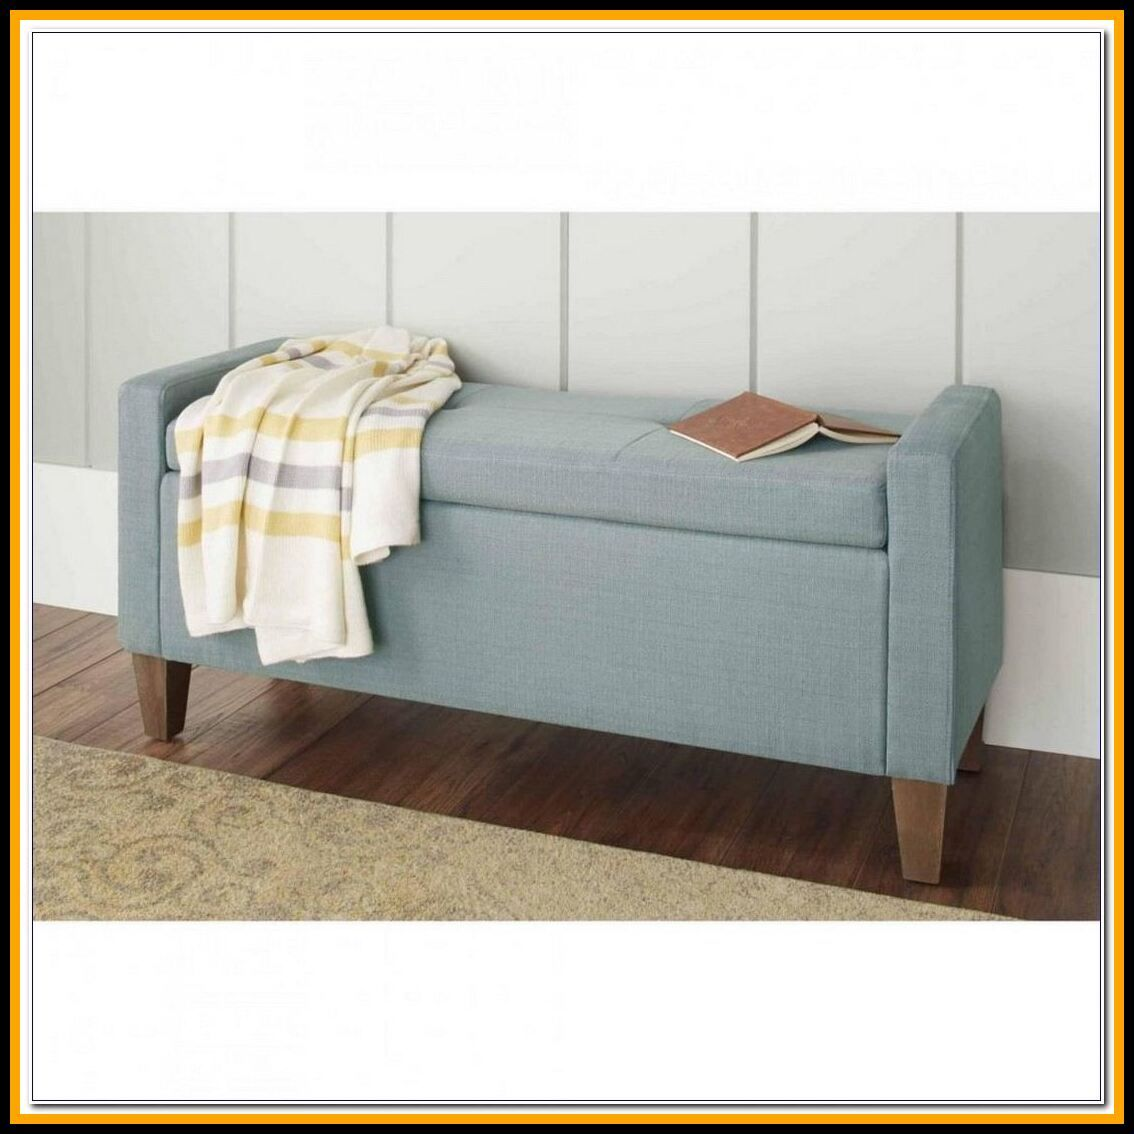 100 Reference Of Small Narrow Bench Seat In 2020 Entryway Bench Storage Storage Bench Indoor Storage Bench